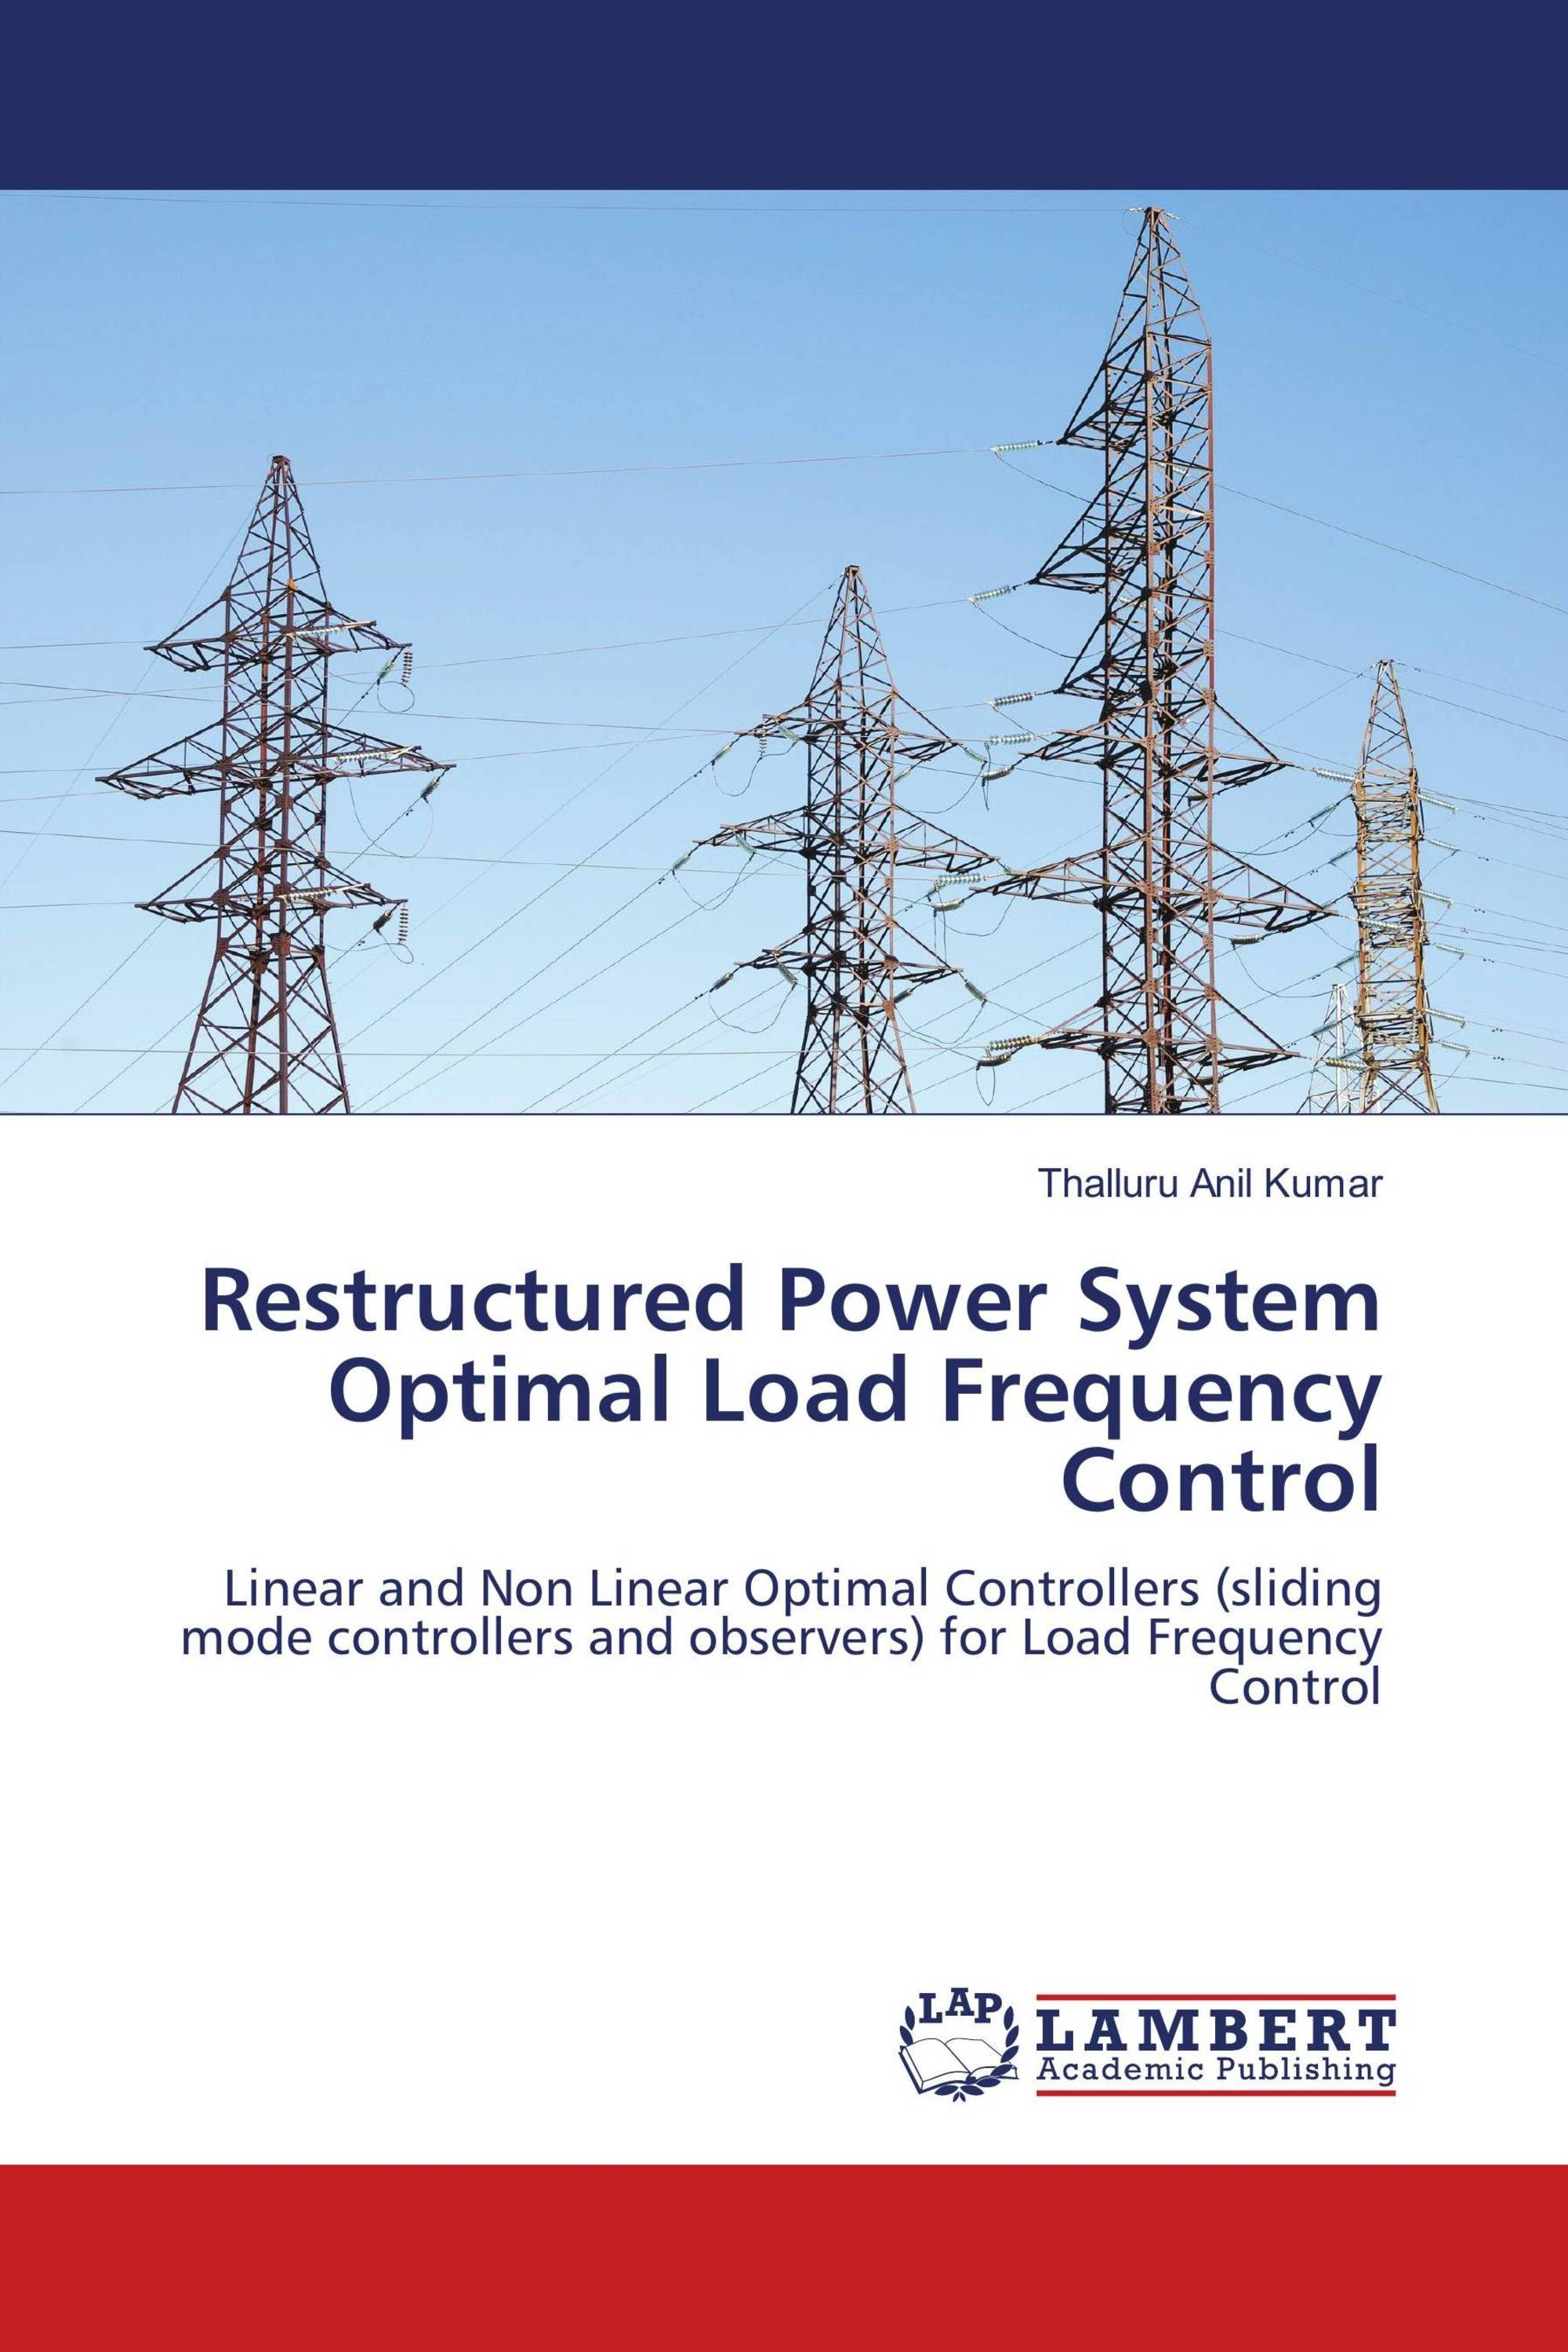 Restructured Power System Optimal Load Frequency Control